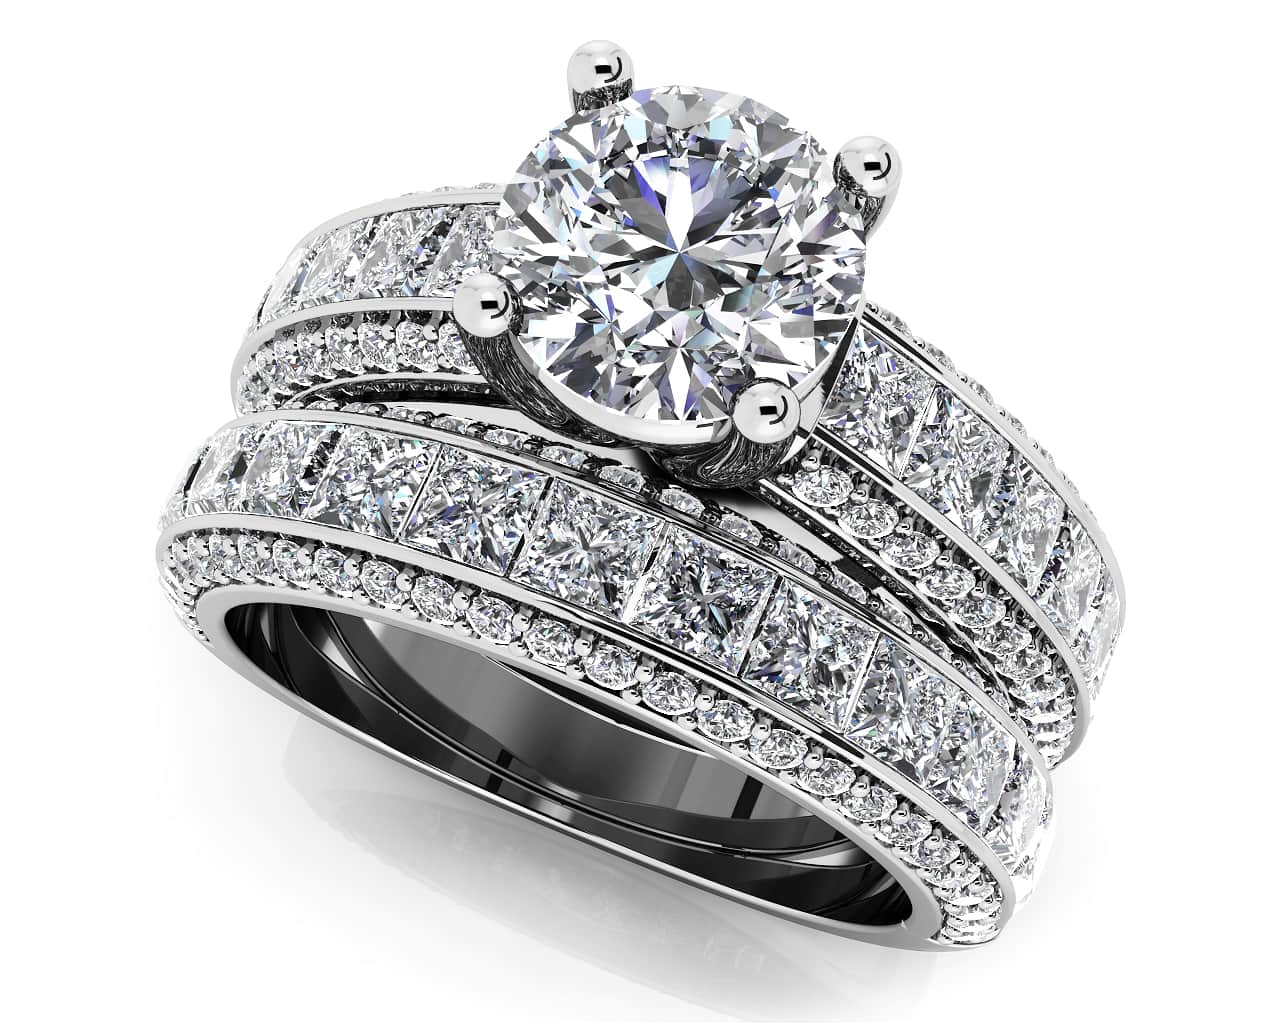 customize your wedding set matching diamond bridal set - Diamond Wedding Ring Sets